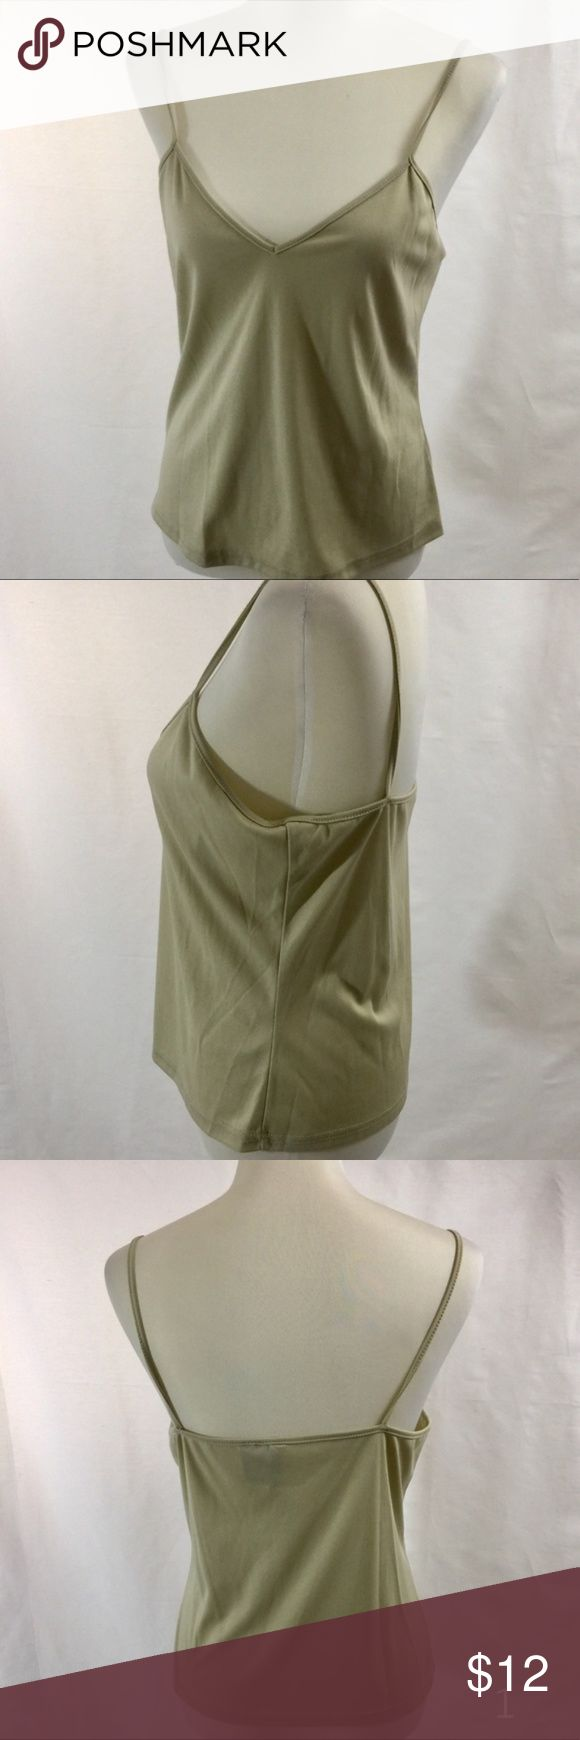 """New Directions Solid Light Gold Cami Top Adorable alone or as a seamless layering piece, our Cami is a wardrobe must have. V neck neckline adjustable spaghetti straps fitted hits at the hip approx. 19""""-20"""" length 100% Polyester washable New Directions Tops Camisoles"""